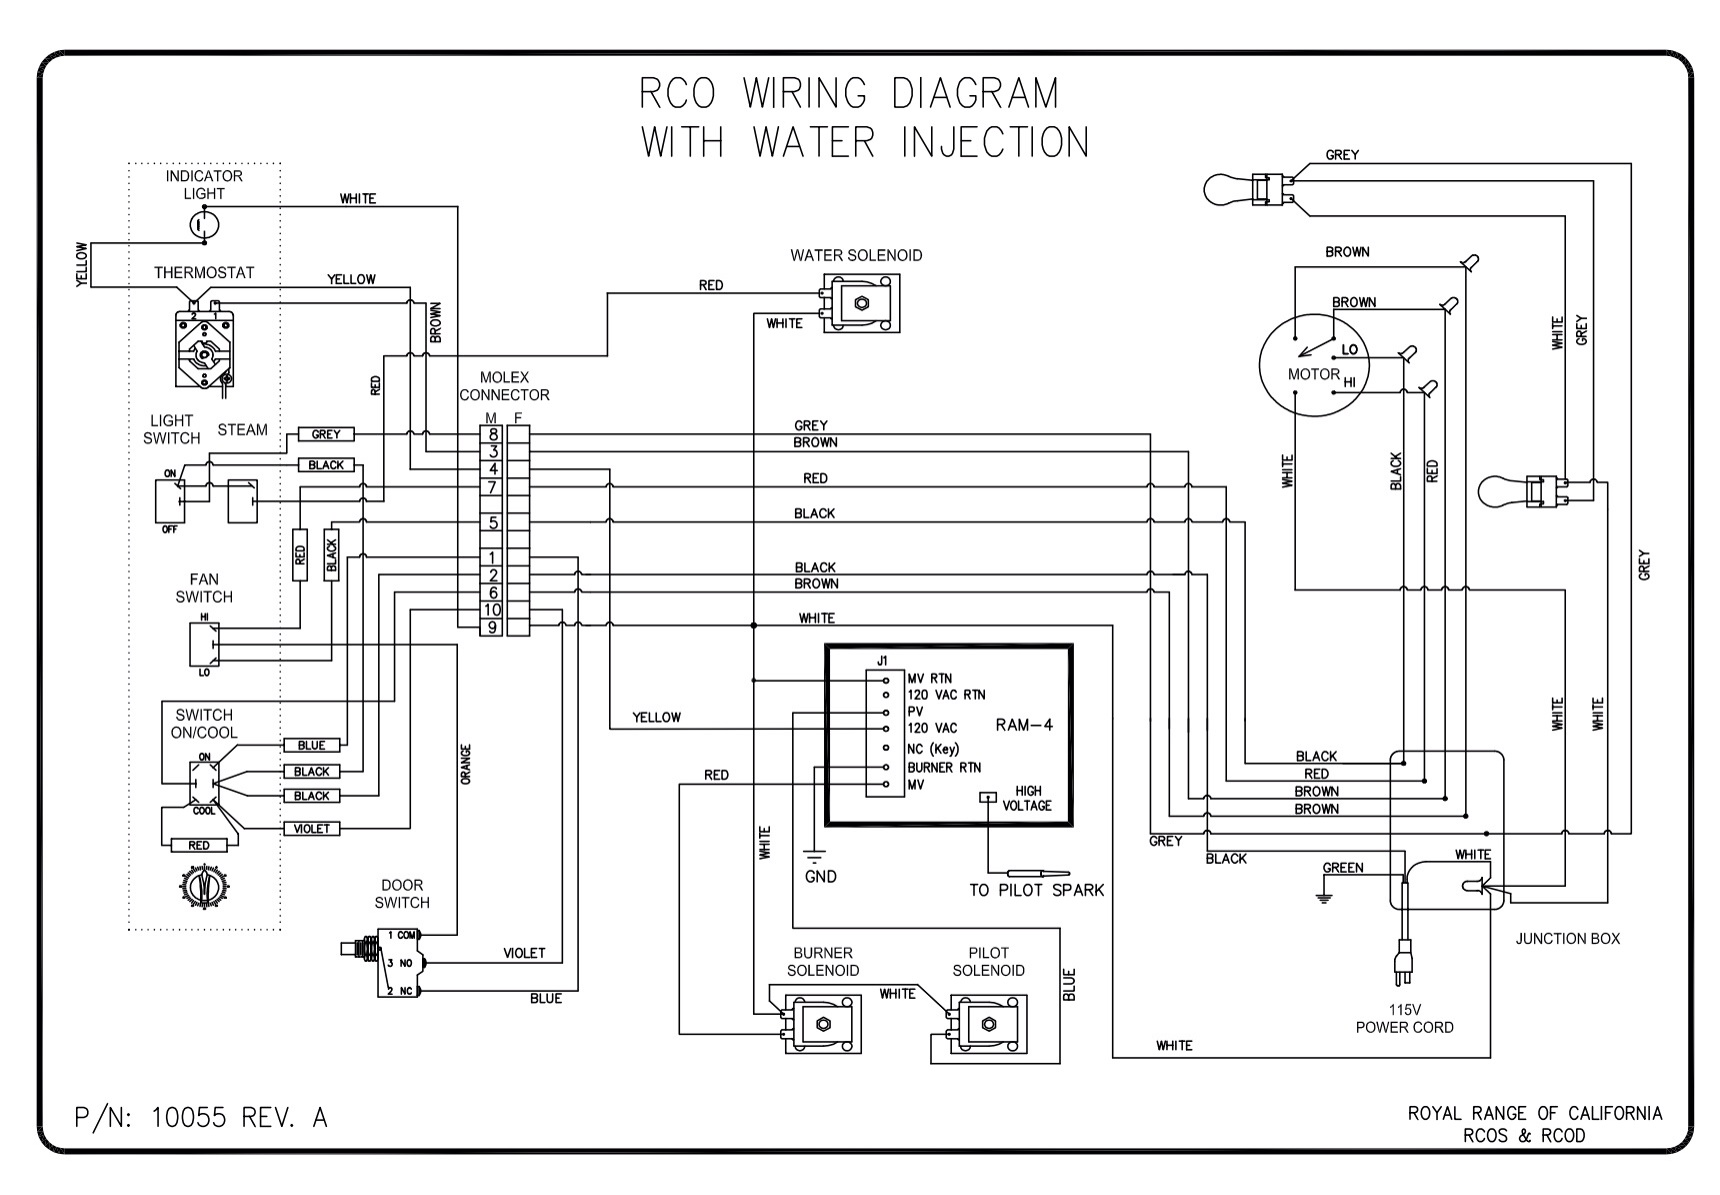 RCO with water inj?resize=665%2C462&ssl=1 oven wiring instructions wiring diagram  at readyjetset.co